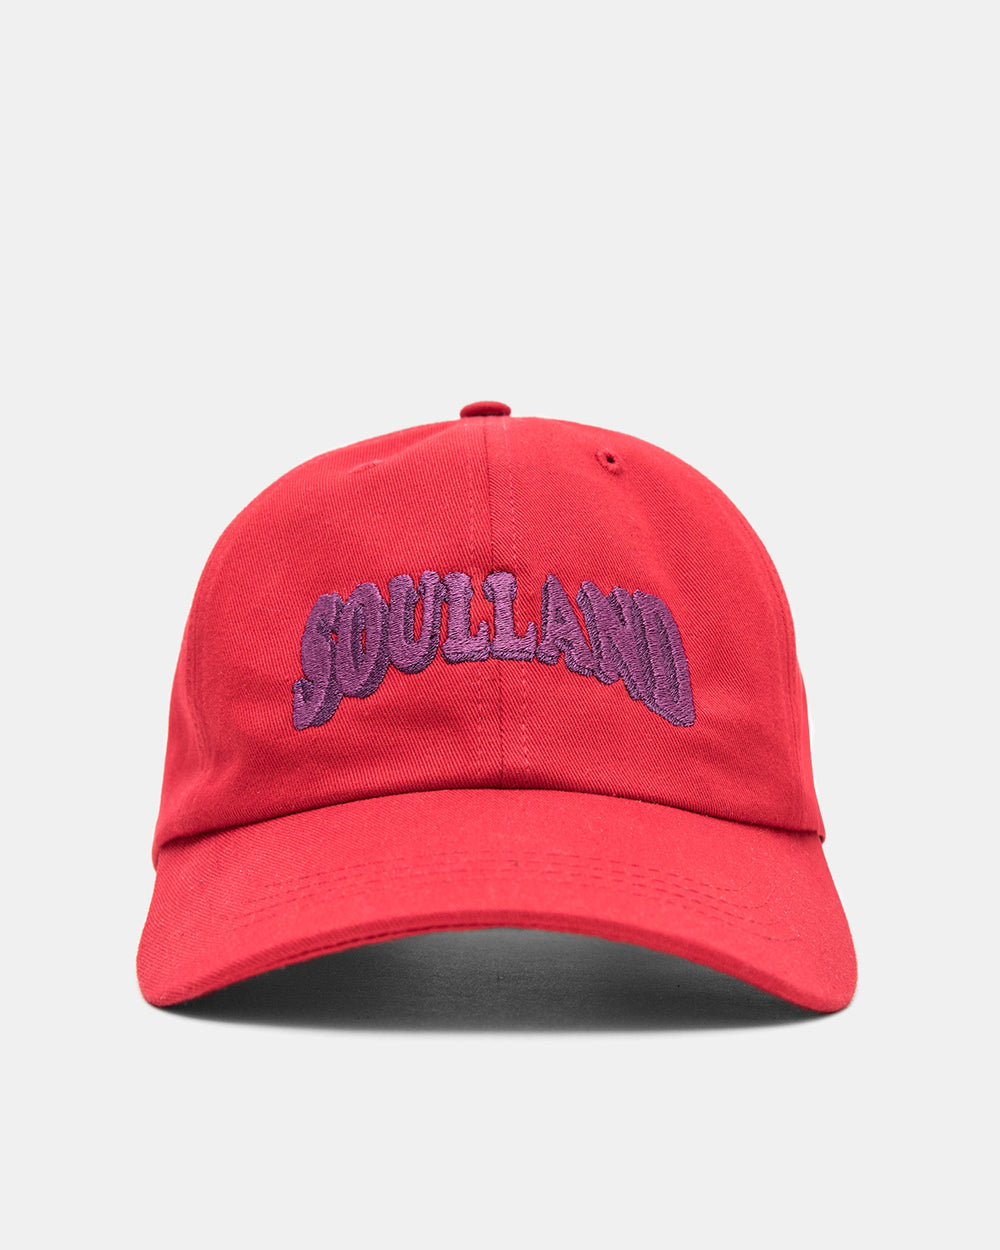 Soulland - Dad Cap (Red)